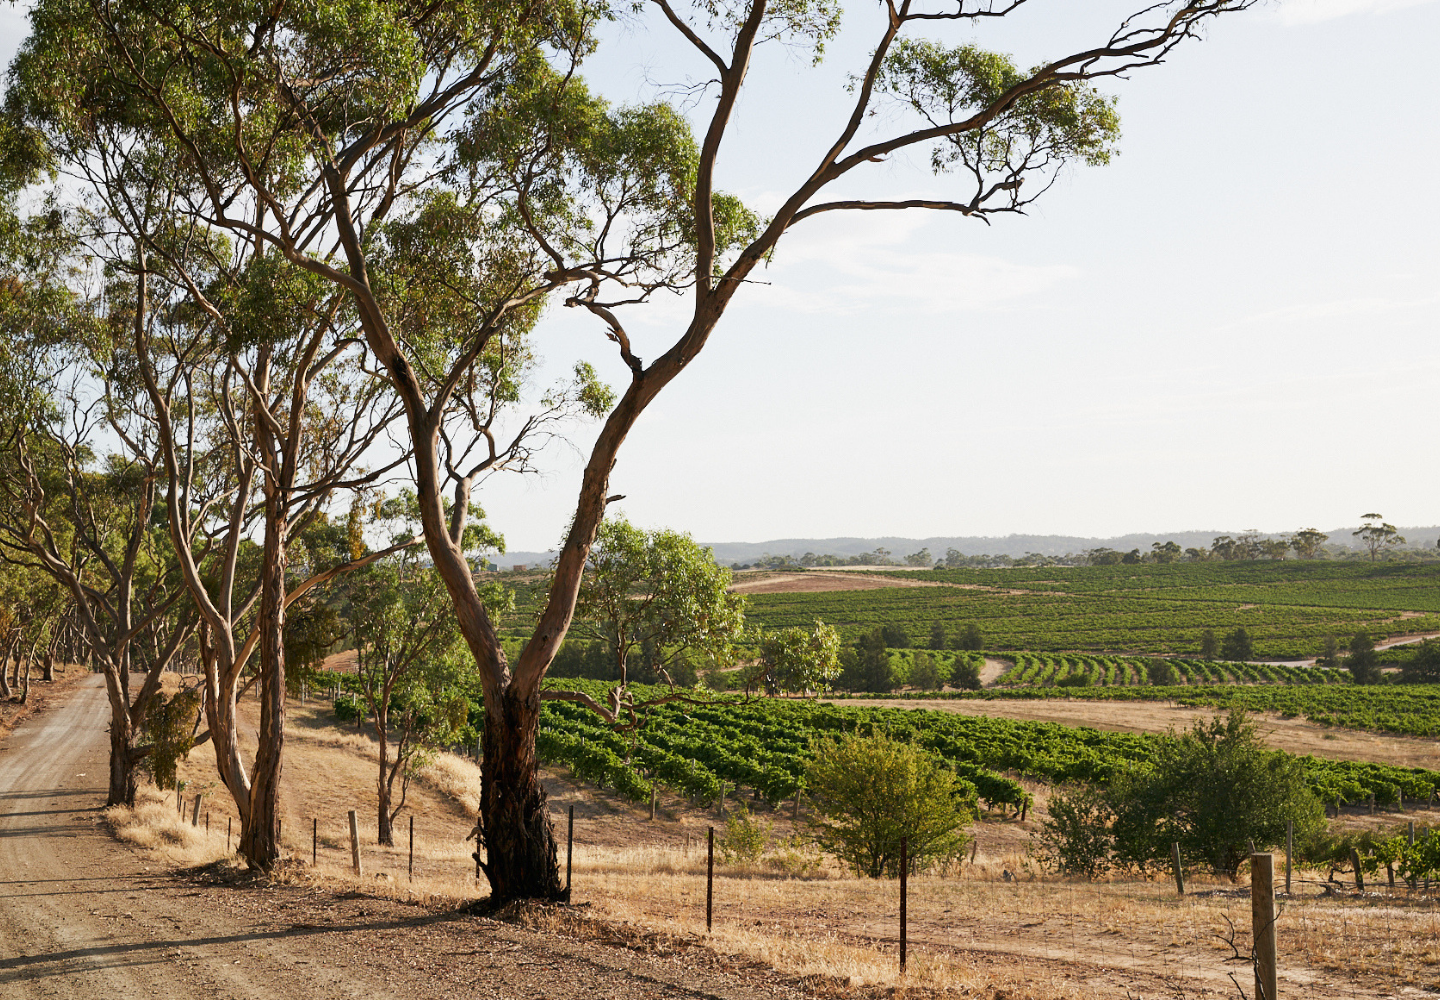 Vineyards in the Barossa